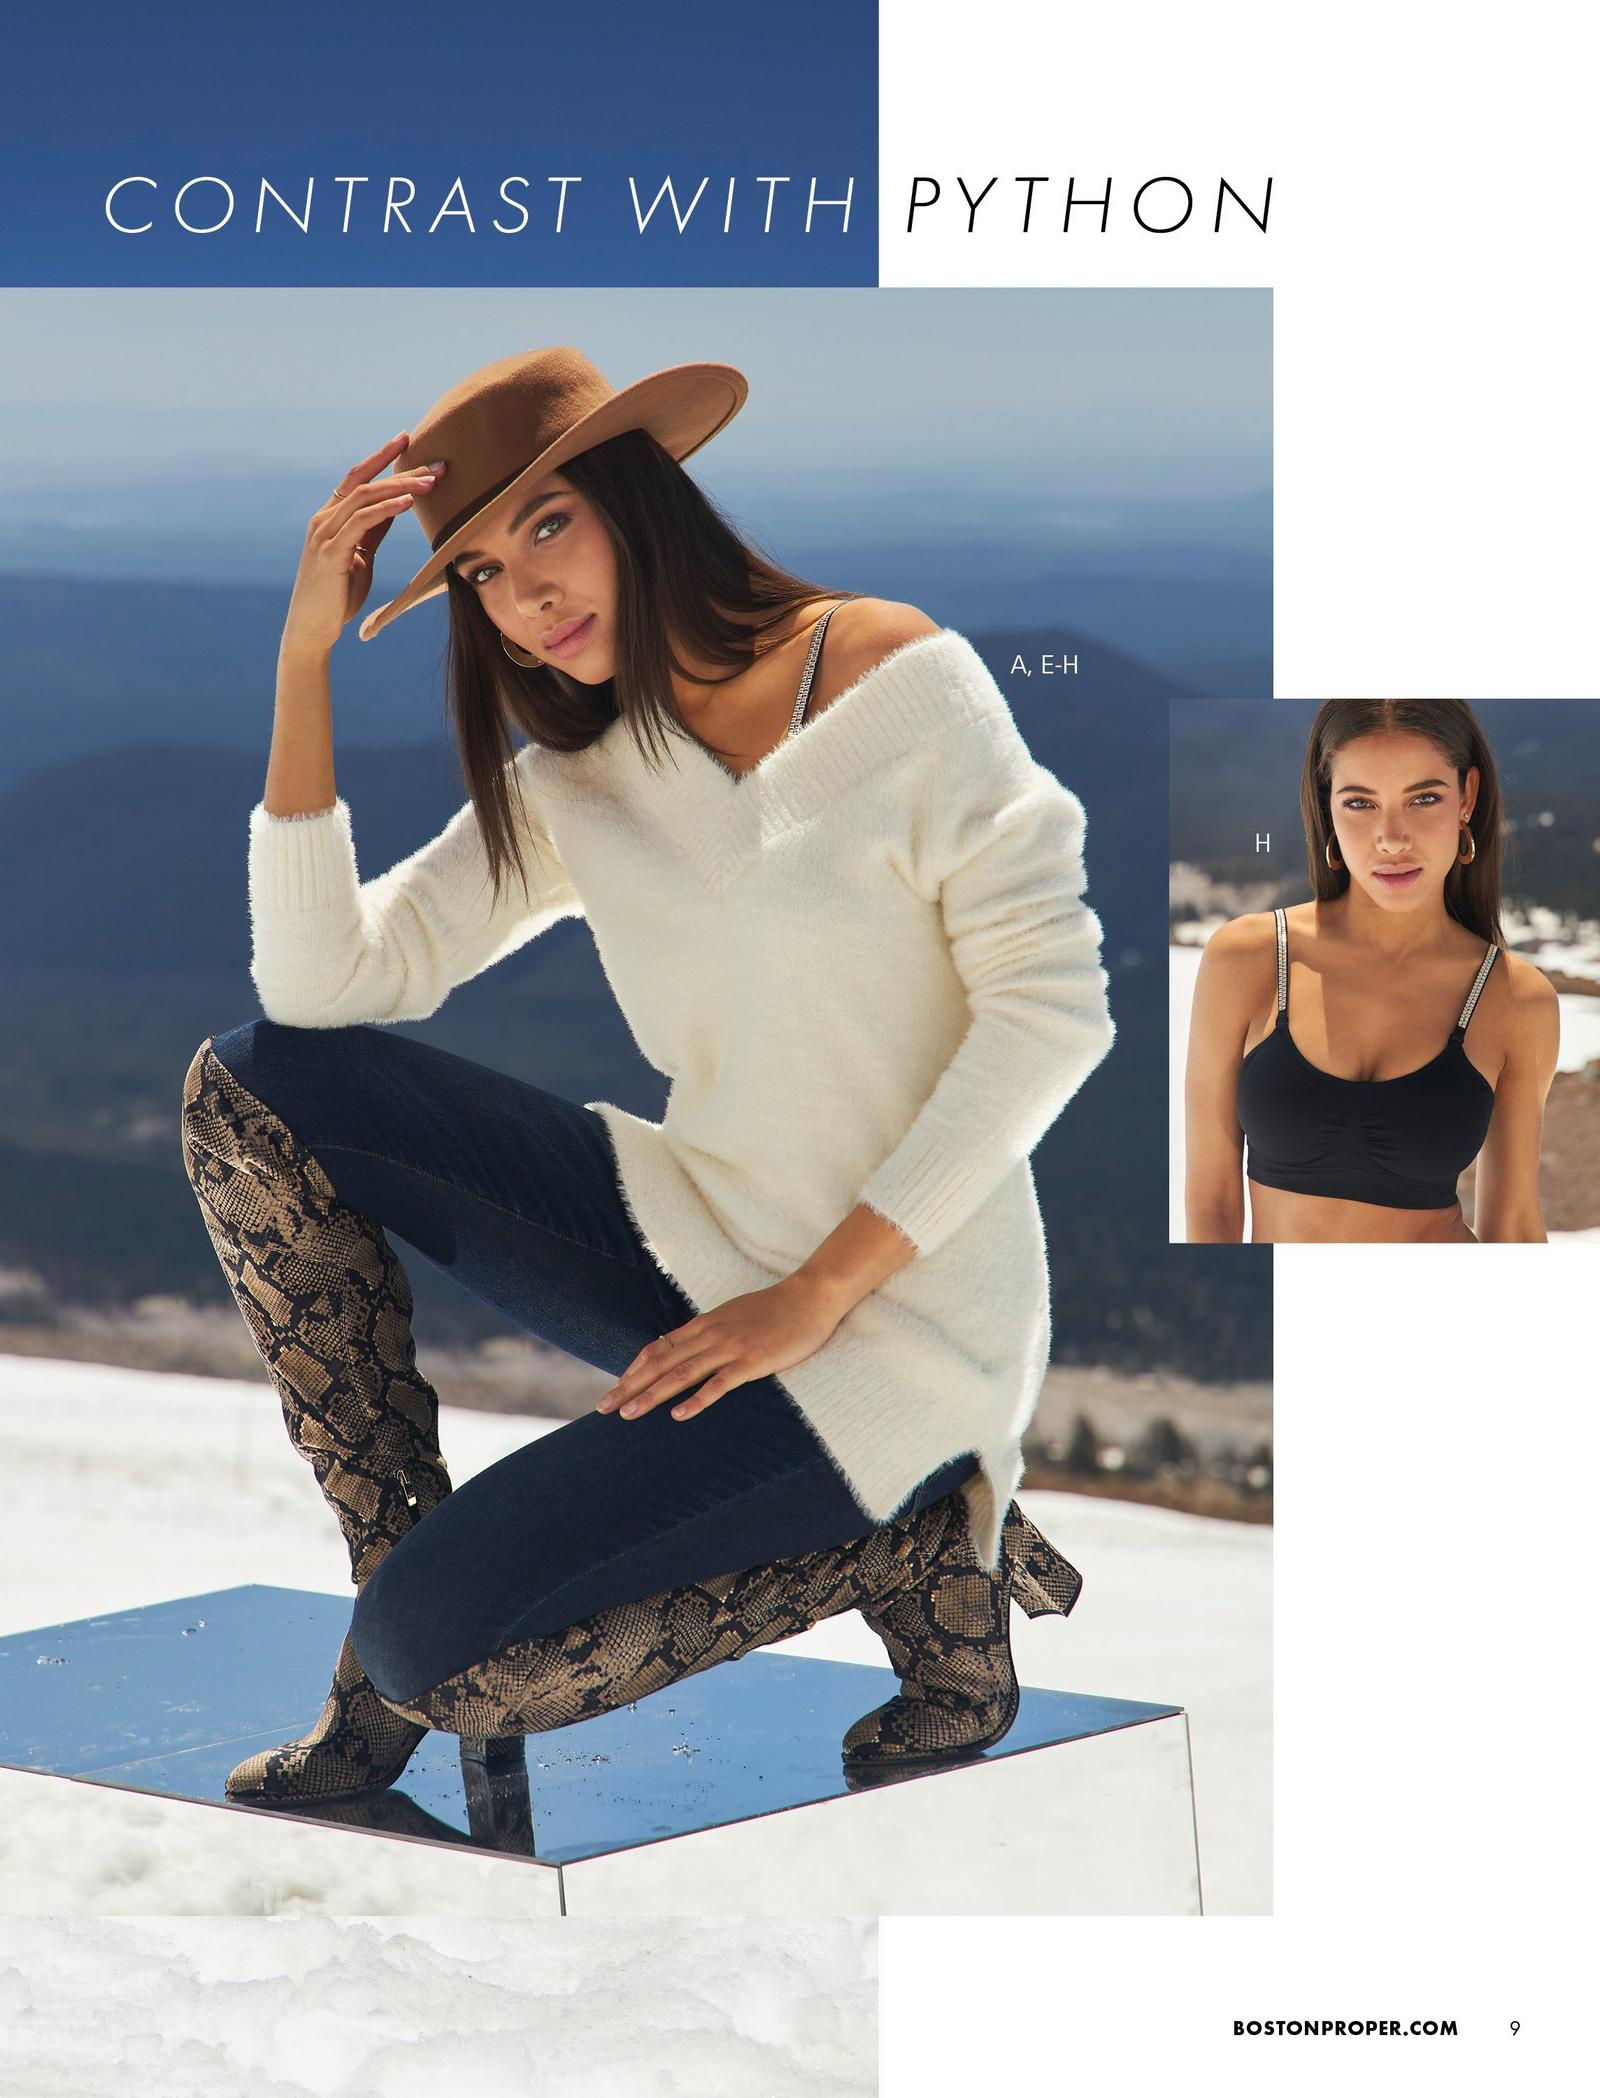 left model wearing an off-white plush v-neck sweater, jeans, python print over-the-knee boots, and brown felt hat. right model wearing a black bralette with rhinestone studded straps.